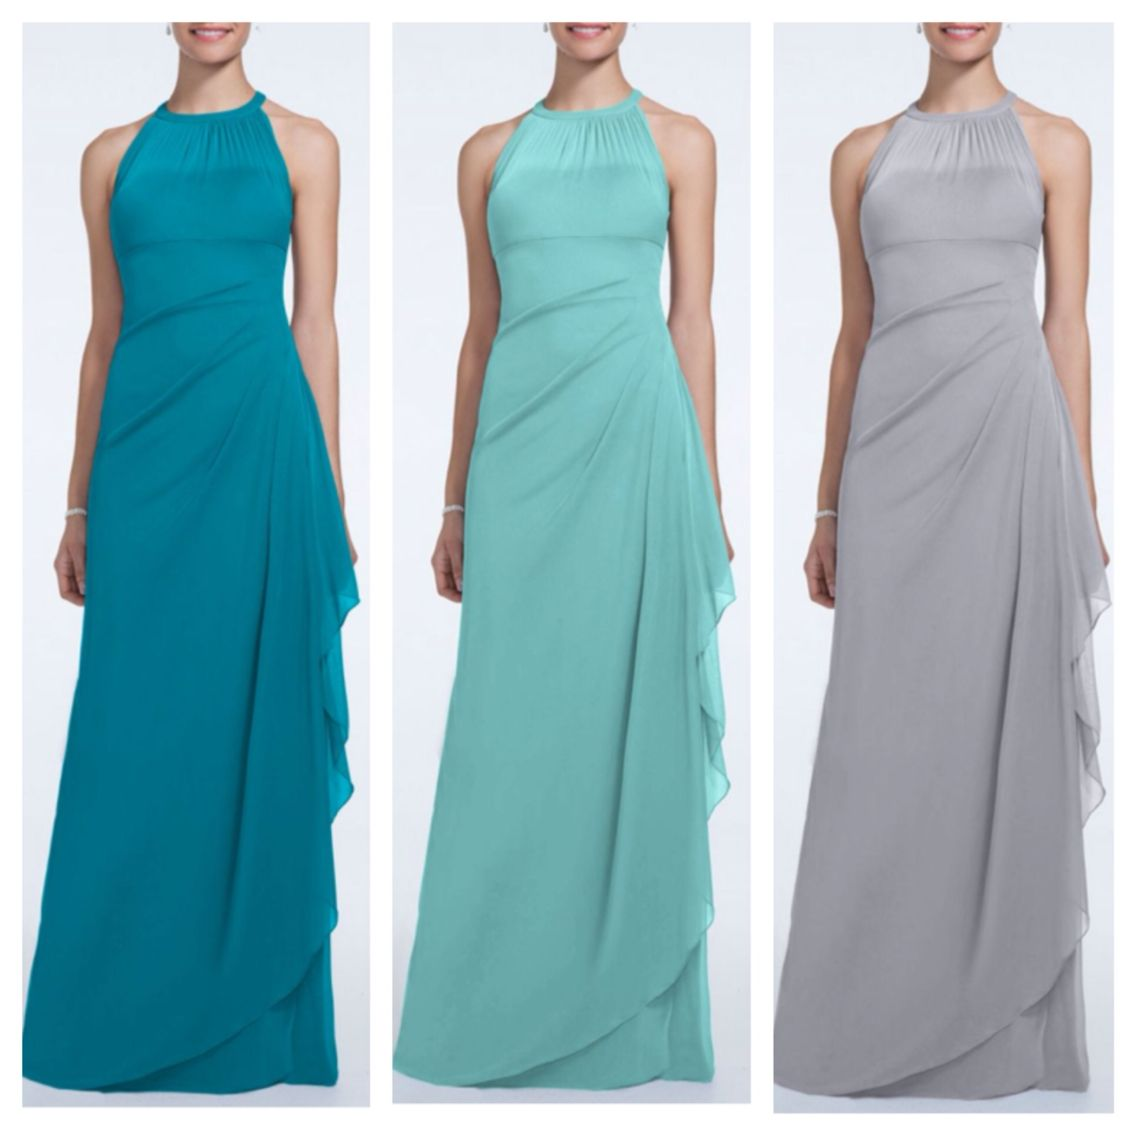 David Bridal Bridesmaid Dresses Plus Size: Here's What Your Bridesmaids Would Look Like If We Went